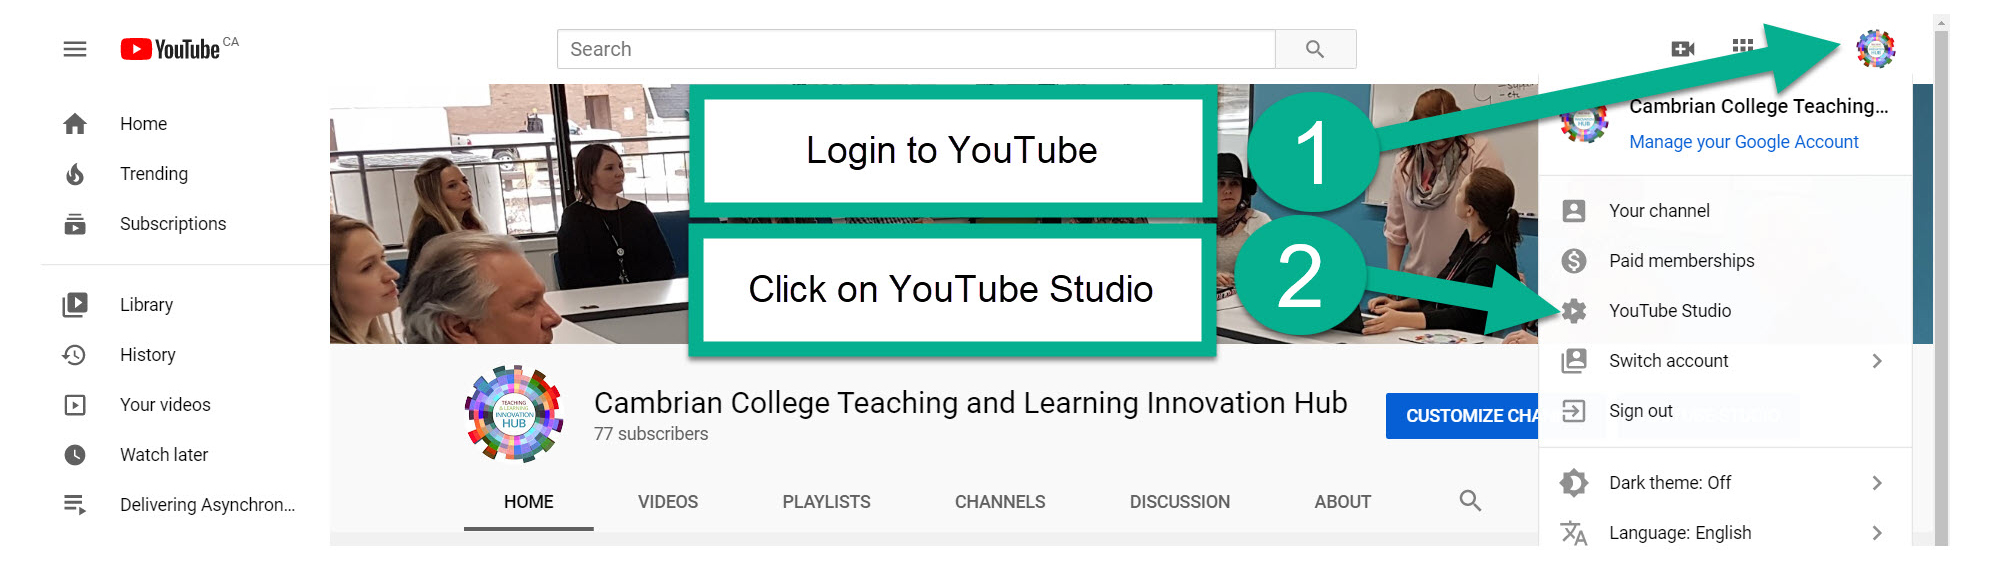 Step 1: Login to YouTube, Step 2: Click on YouTube Studio